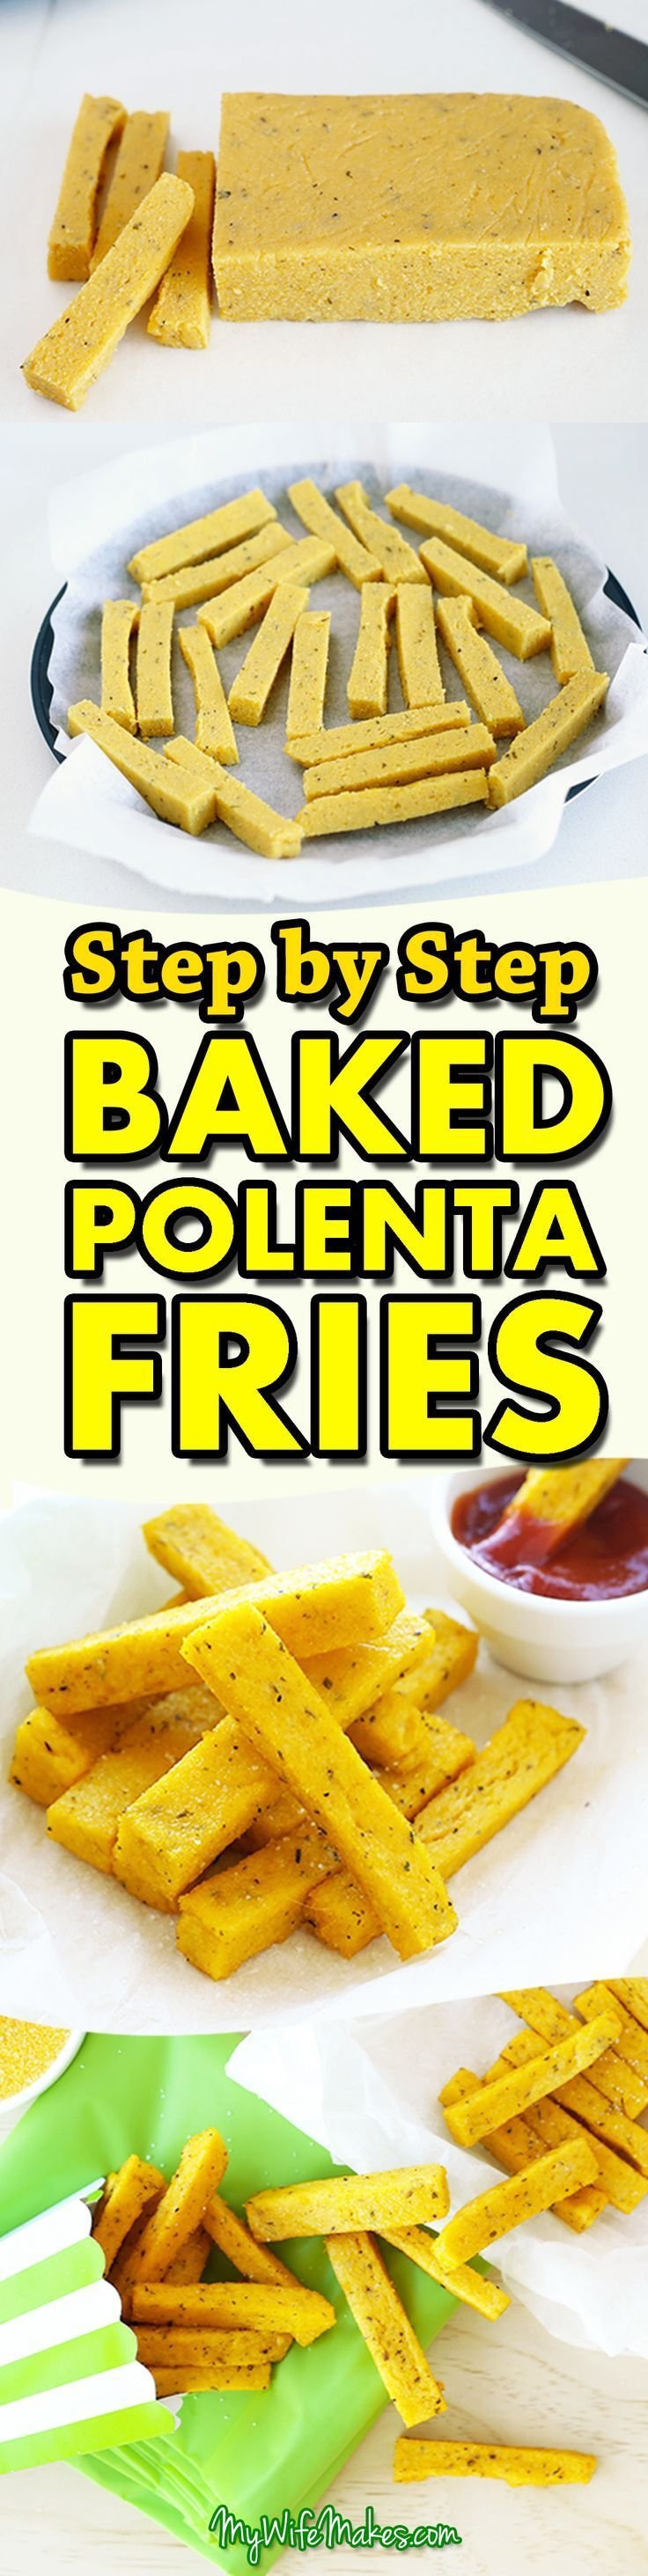 Easy Baked Polenta Fries / Chips Recipe - healthy, vegan, seasoned with dried mixed herbs, nutritional yeast, garlic & onion powder, and other yummy ingredients. #polenta #chips #fries #vegan #healthy #polentachips #polentafries #baked